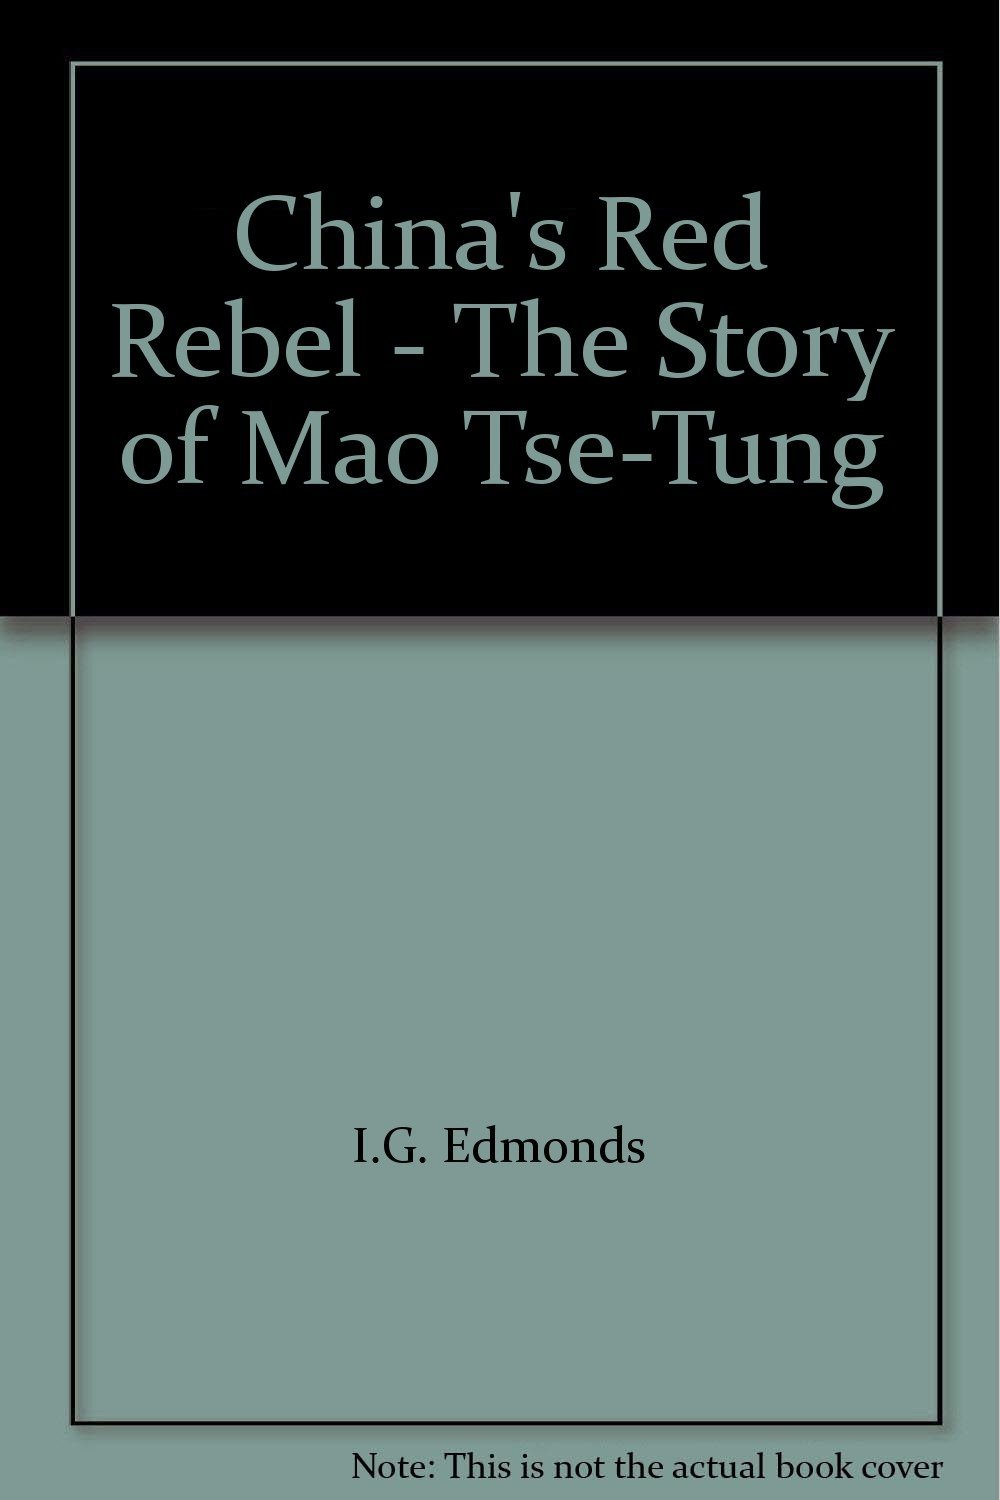 China's Red Rebel - The Story of Mao Tse-Tung